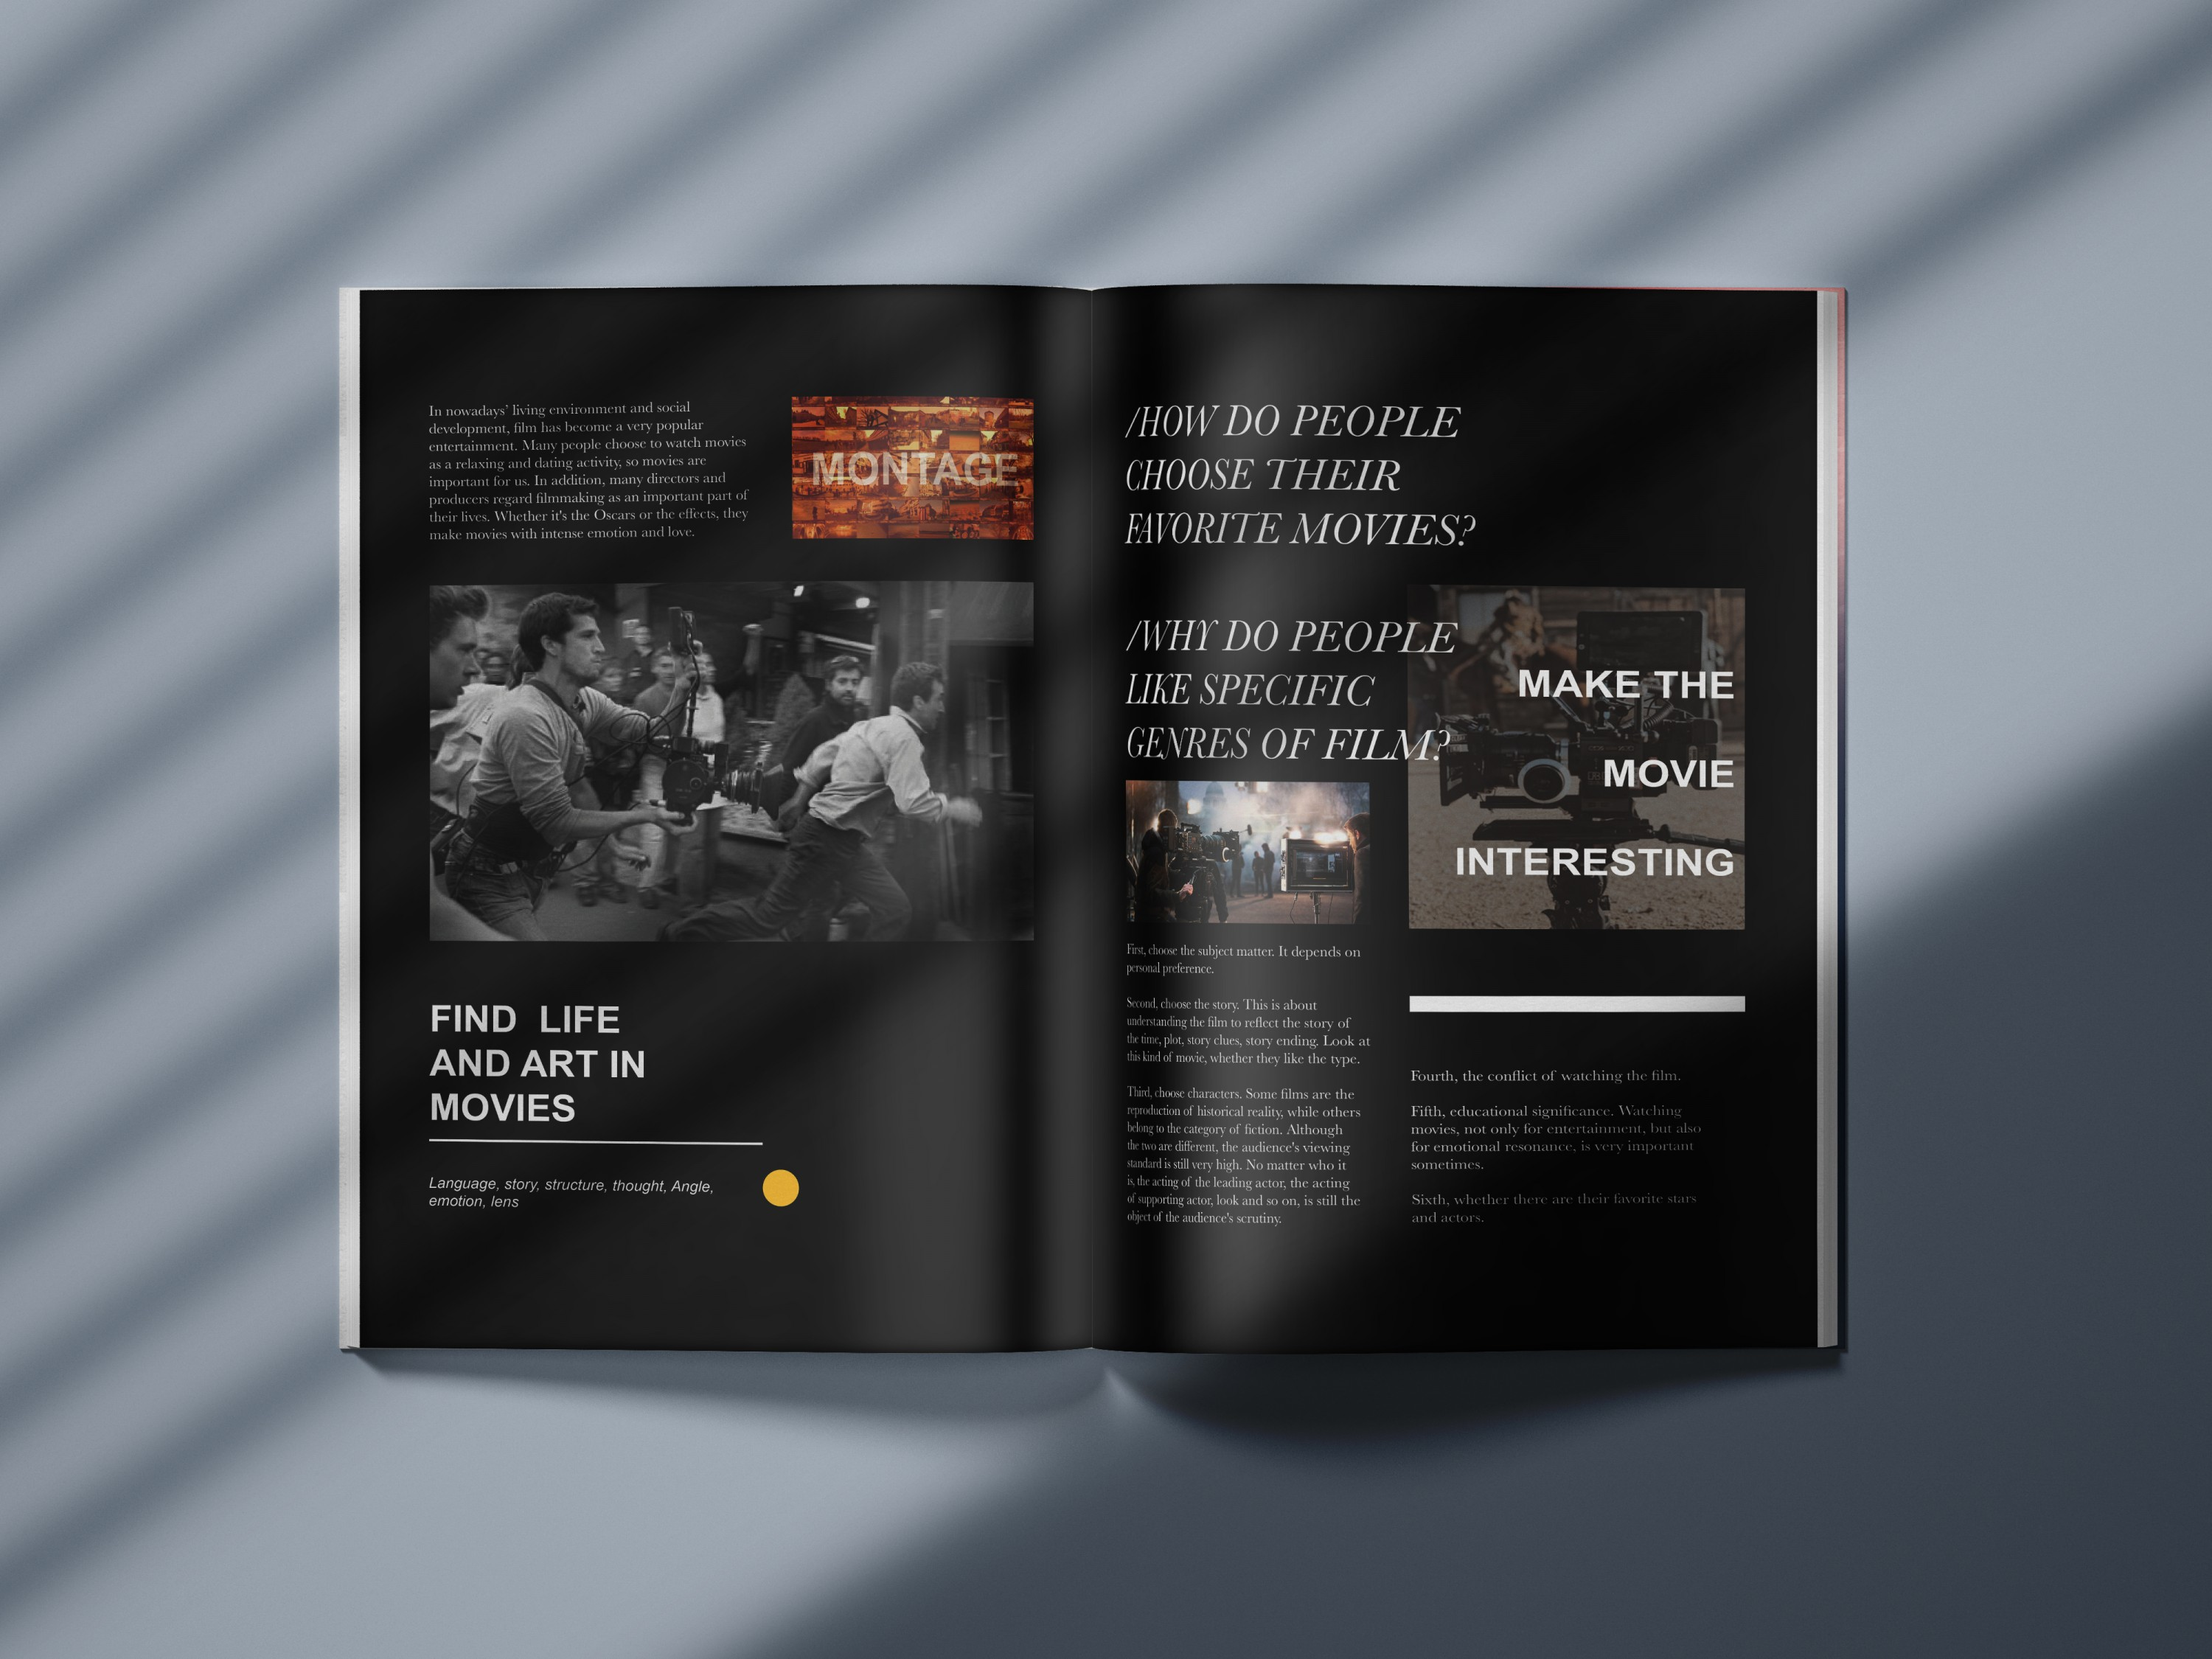 In nowadays living environments and social development, film has become a very popular entertainment. The booklet is like a guide manual. It contains information about the connection between movies and our daily life.